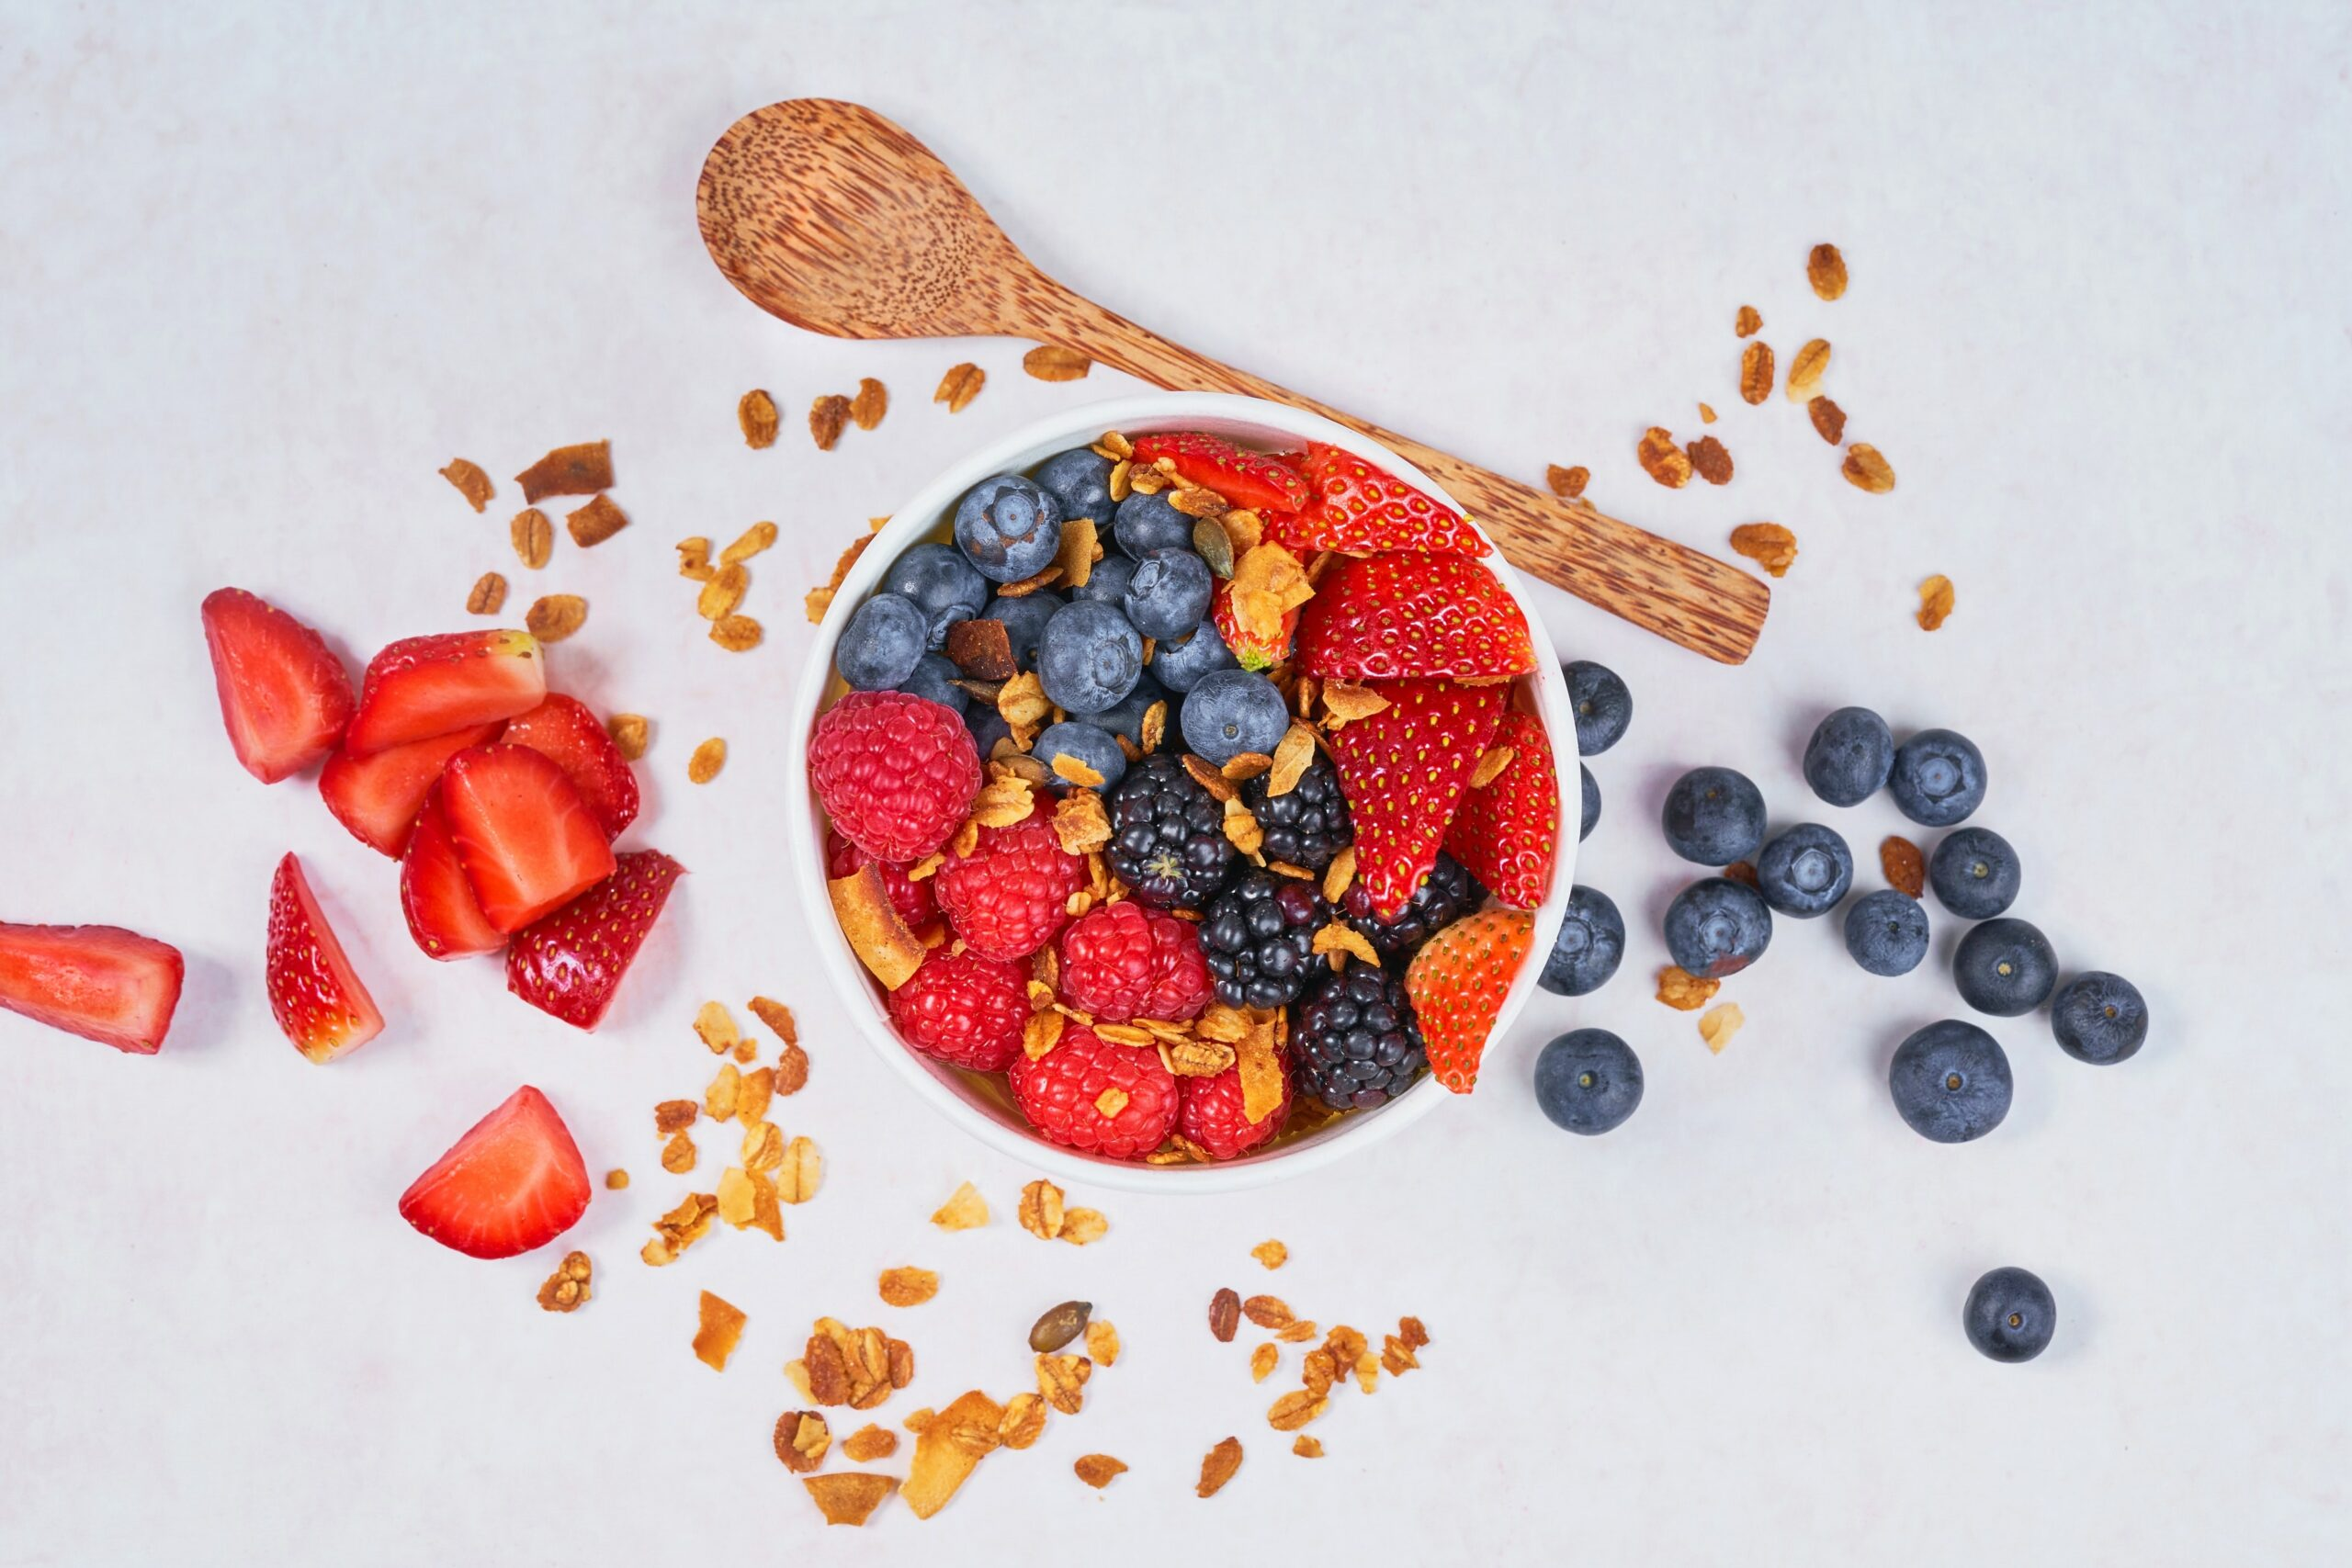 Berries-in-a-bowl-foods-that-fight-inflammation